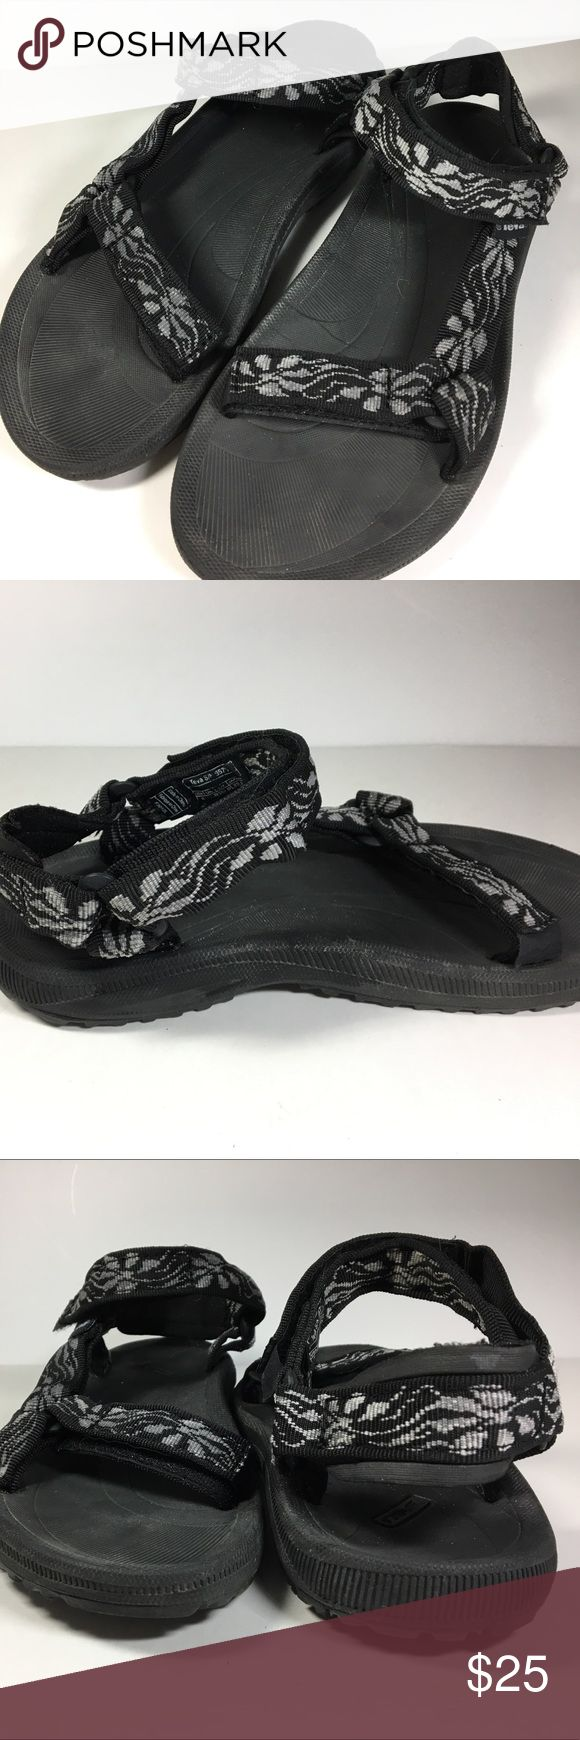 Sandals or shoes for hiking - Teva Hurricane Athletic Sandals Previously Worn With Minimal Normal Wear Great For Hiking Or Water